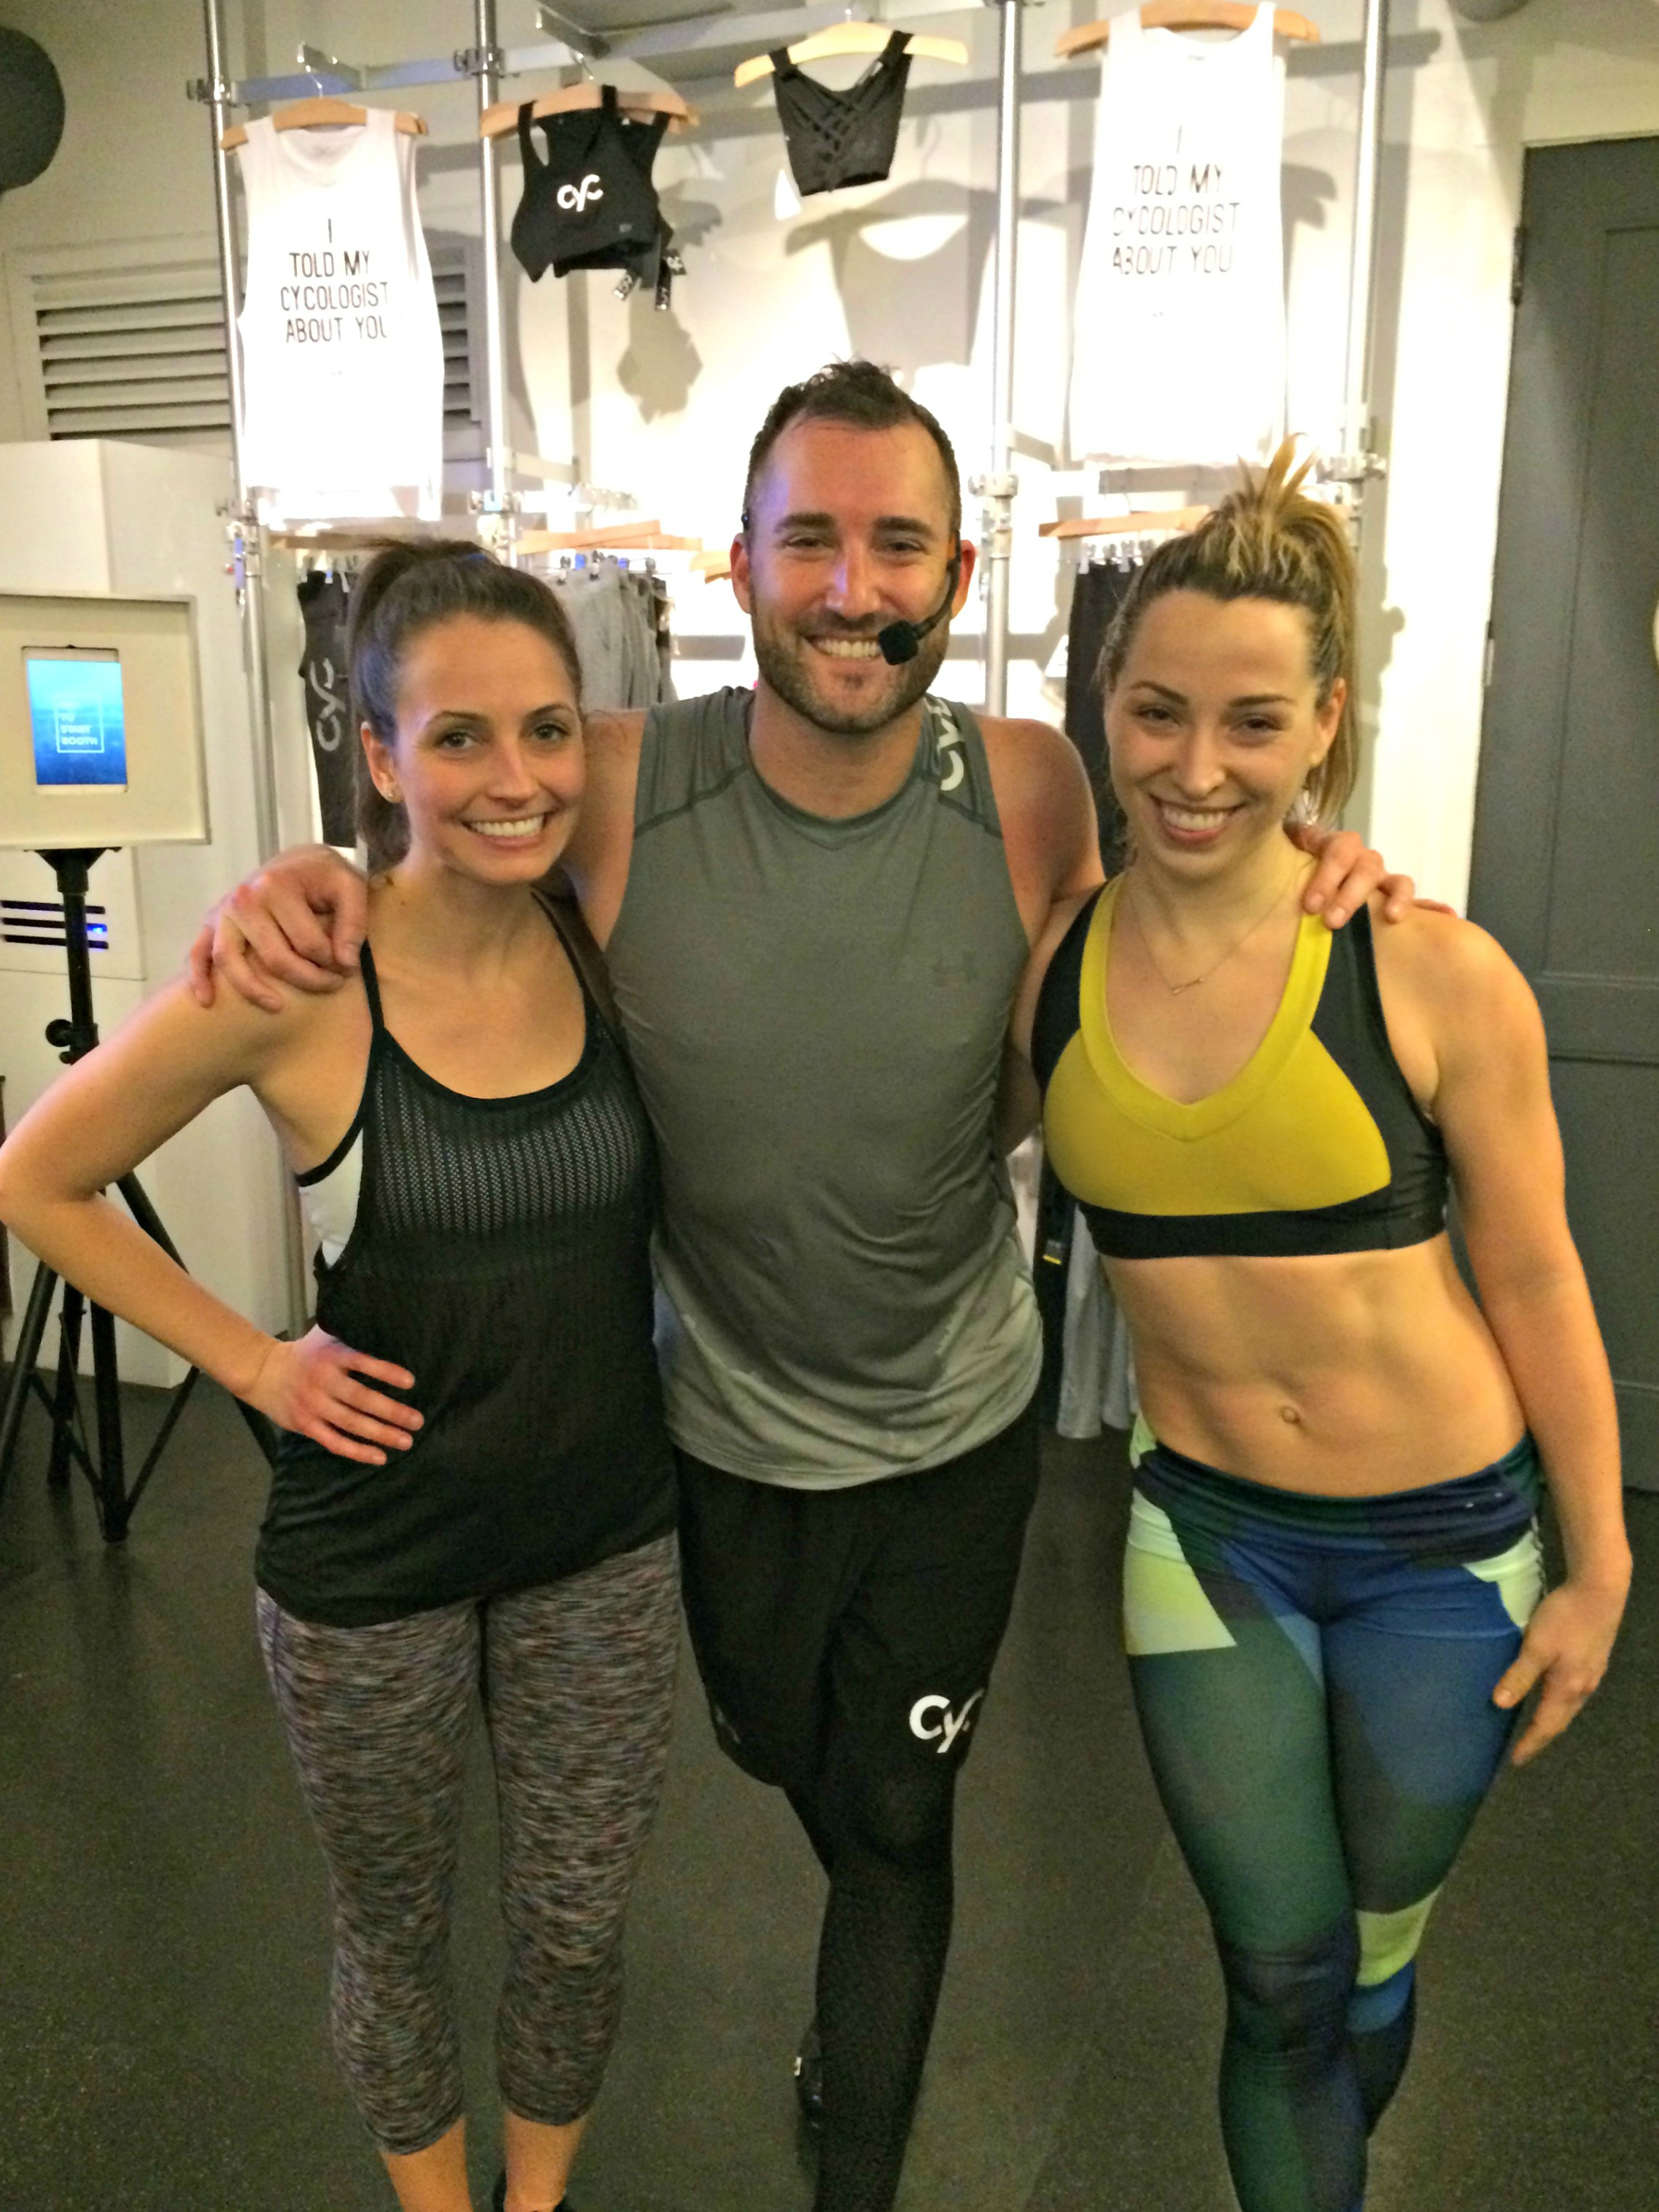 cyc fitness class with lauren and eric